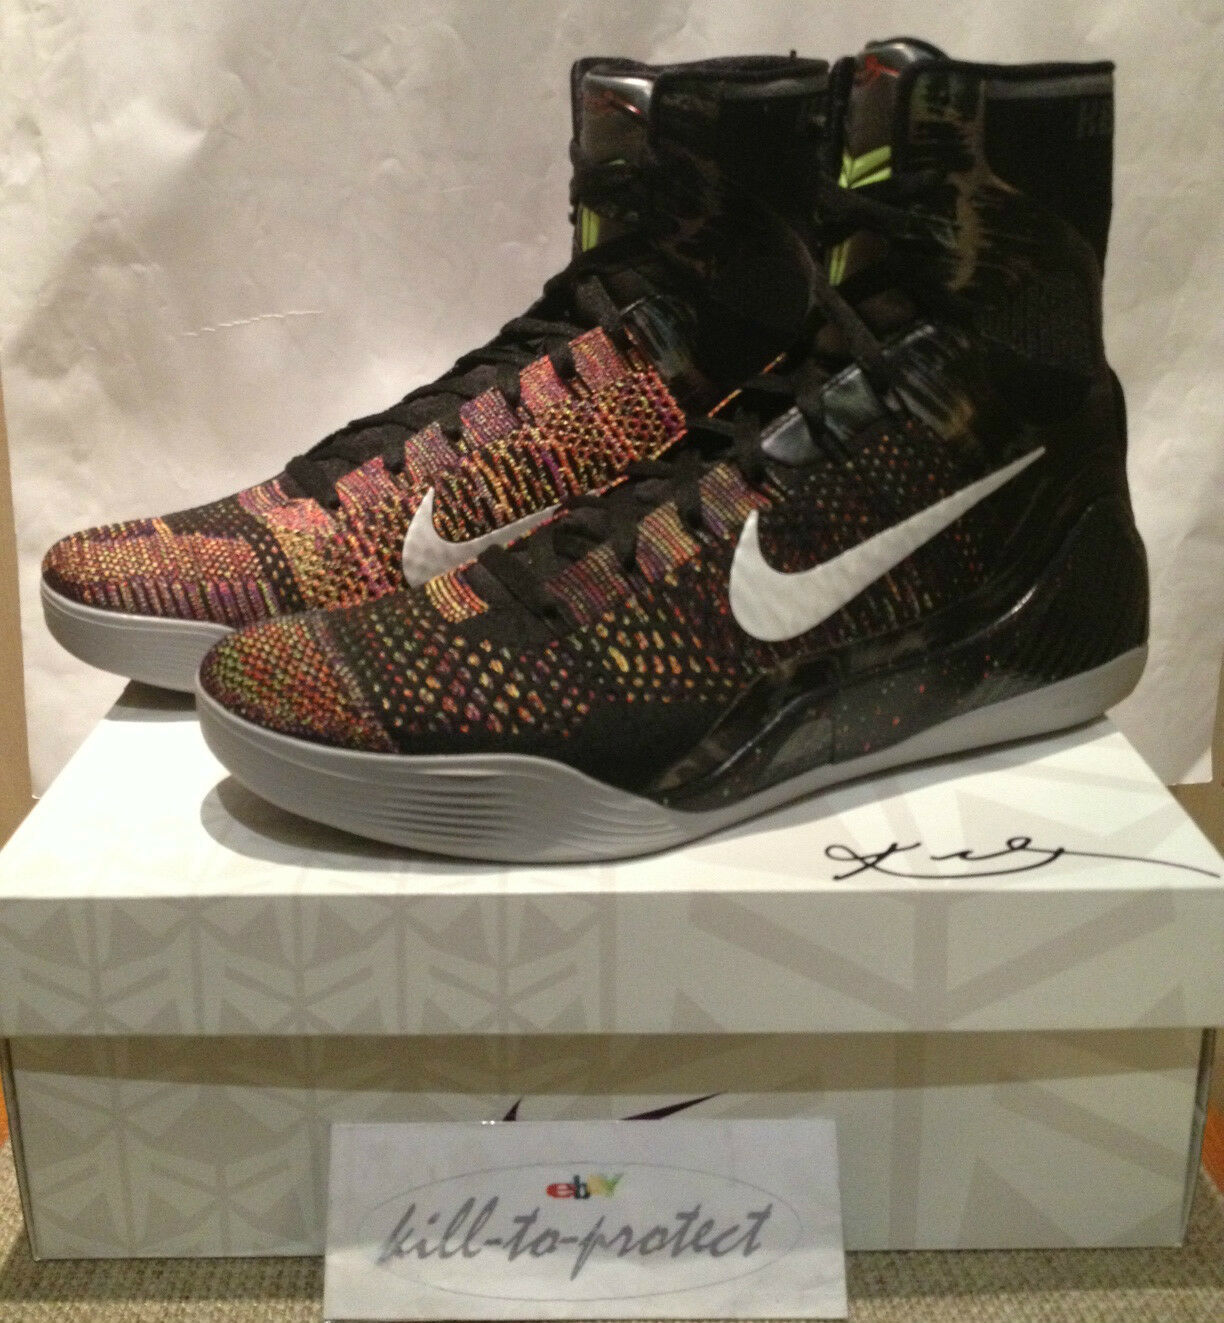 NIKE KOBE 9 IX ELITE MASTERPIECE Sz US10.5 UK9.5 AS 630847-001 MVP PRELUDE 2014